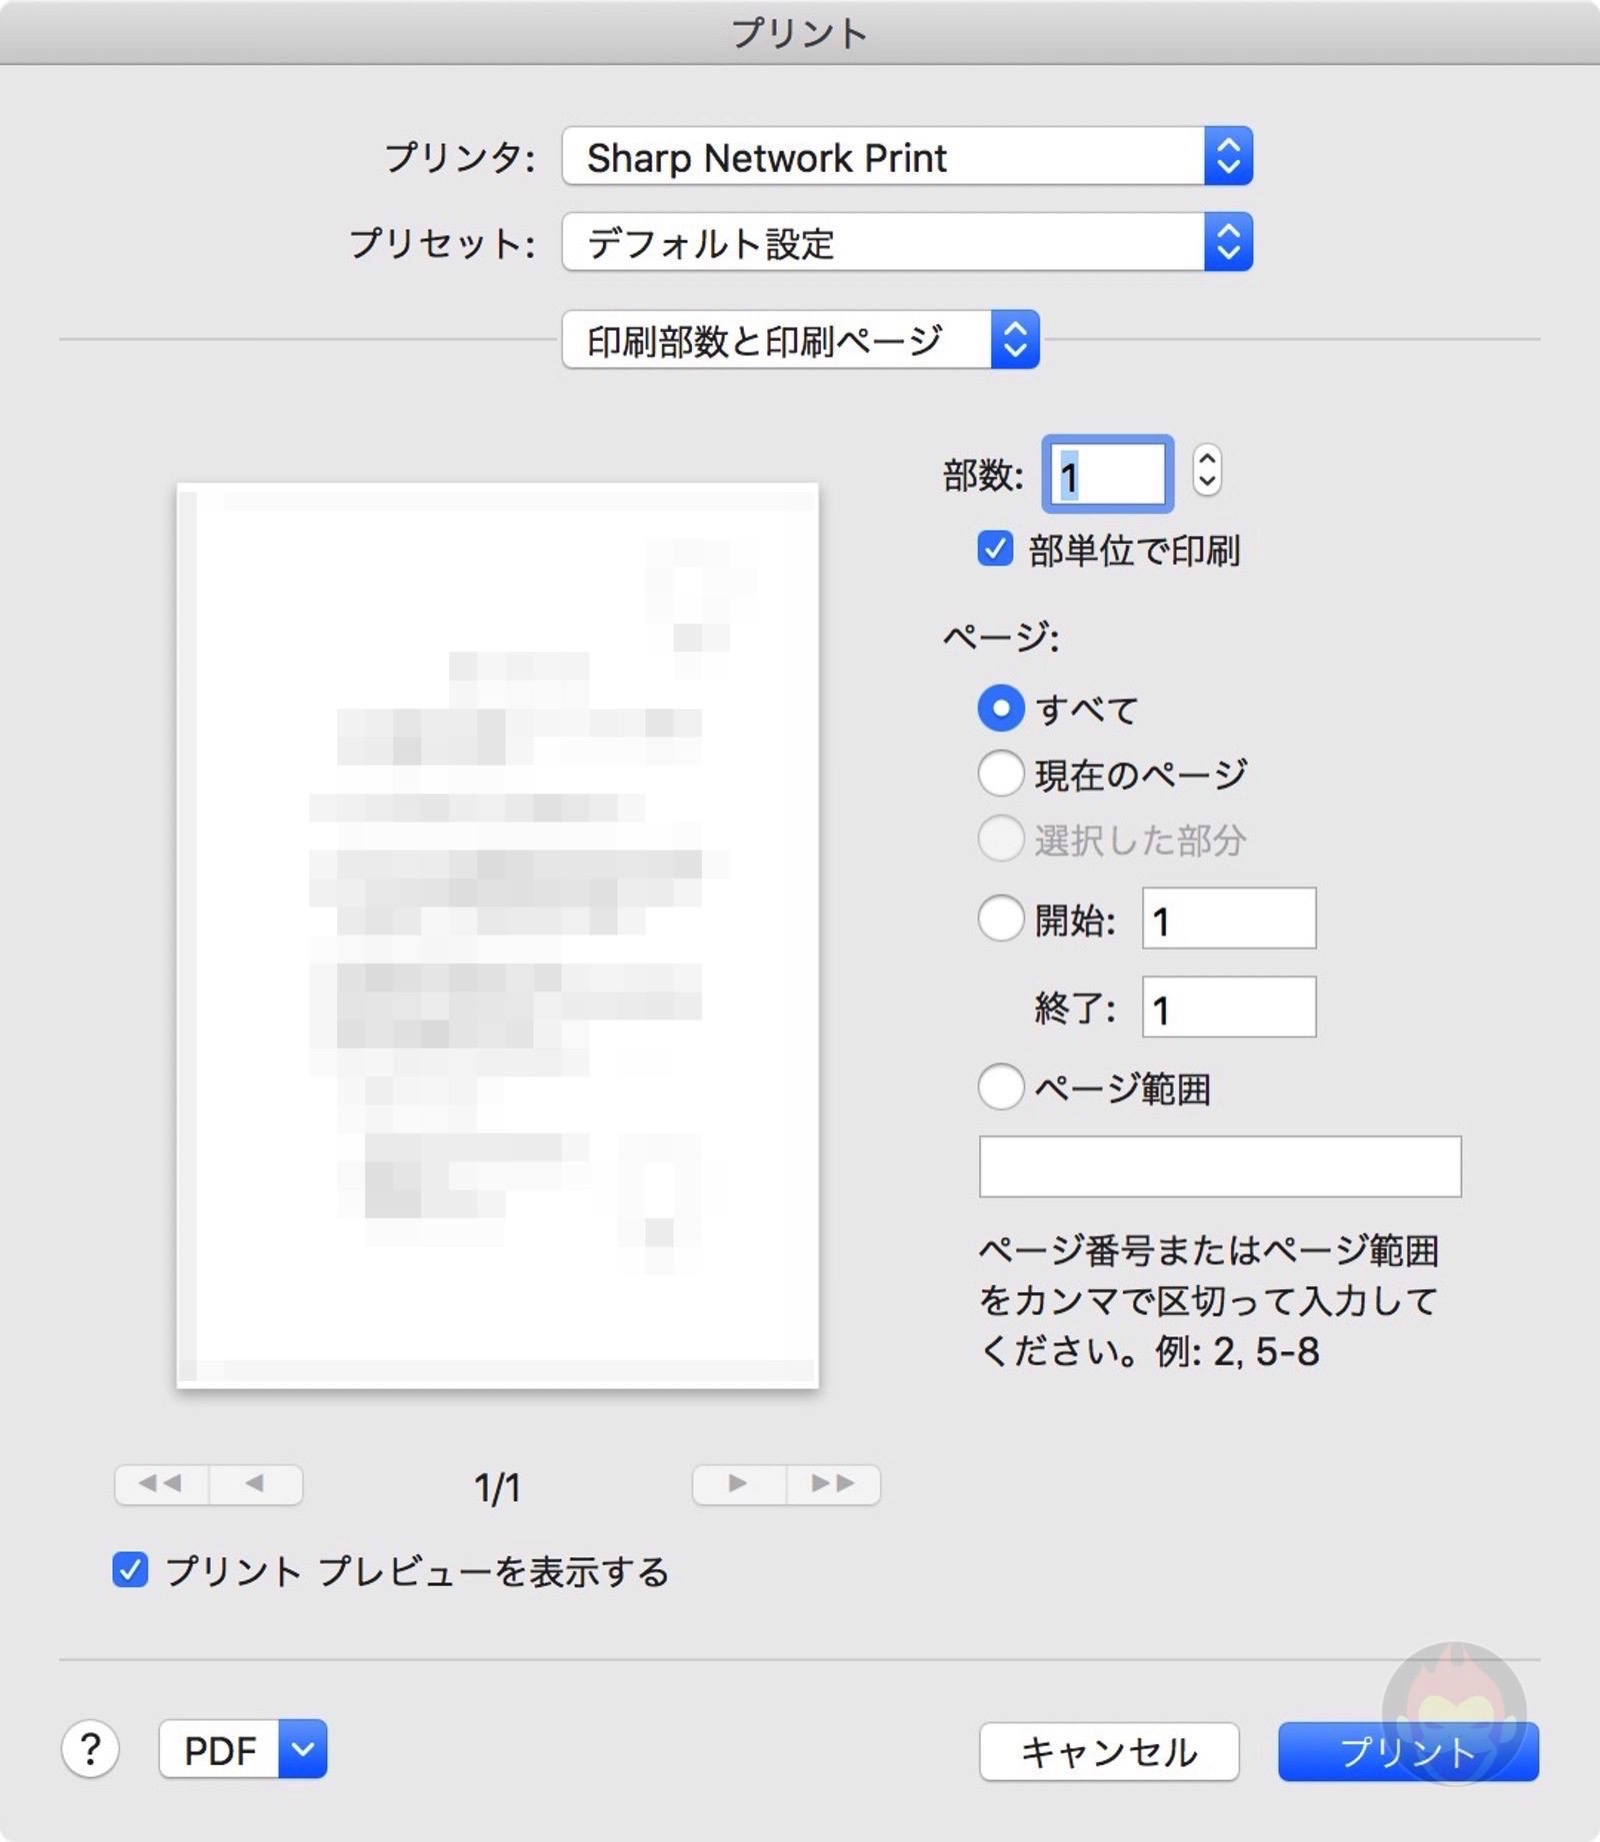 Printing-Files-directly-from-mac-printer-settings-03-2.jpg